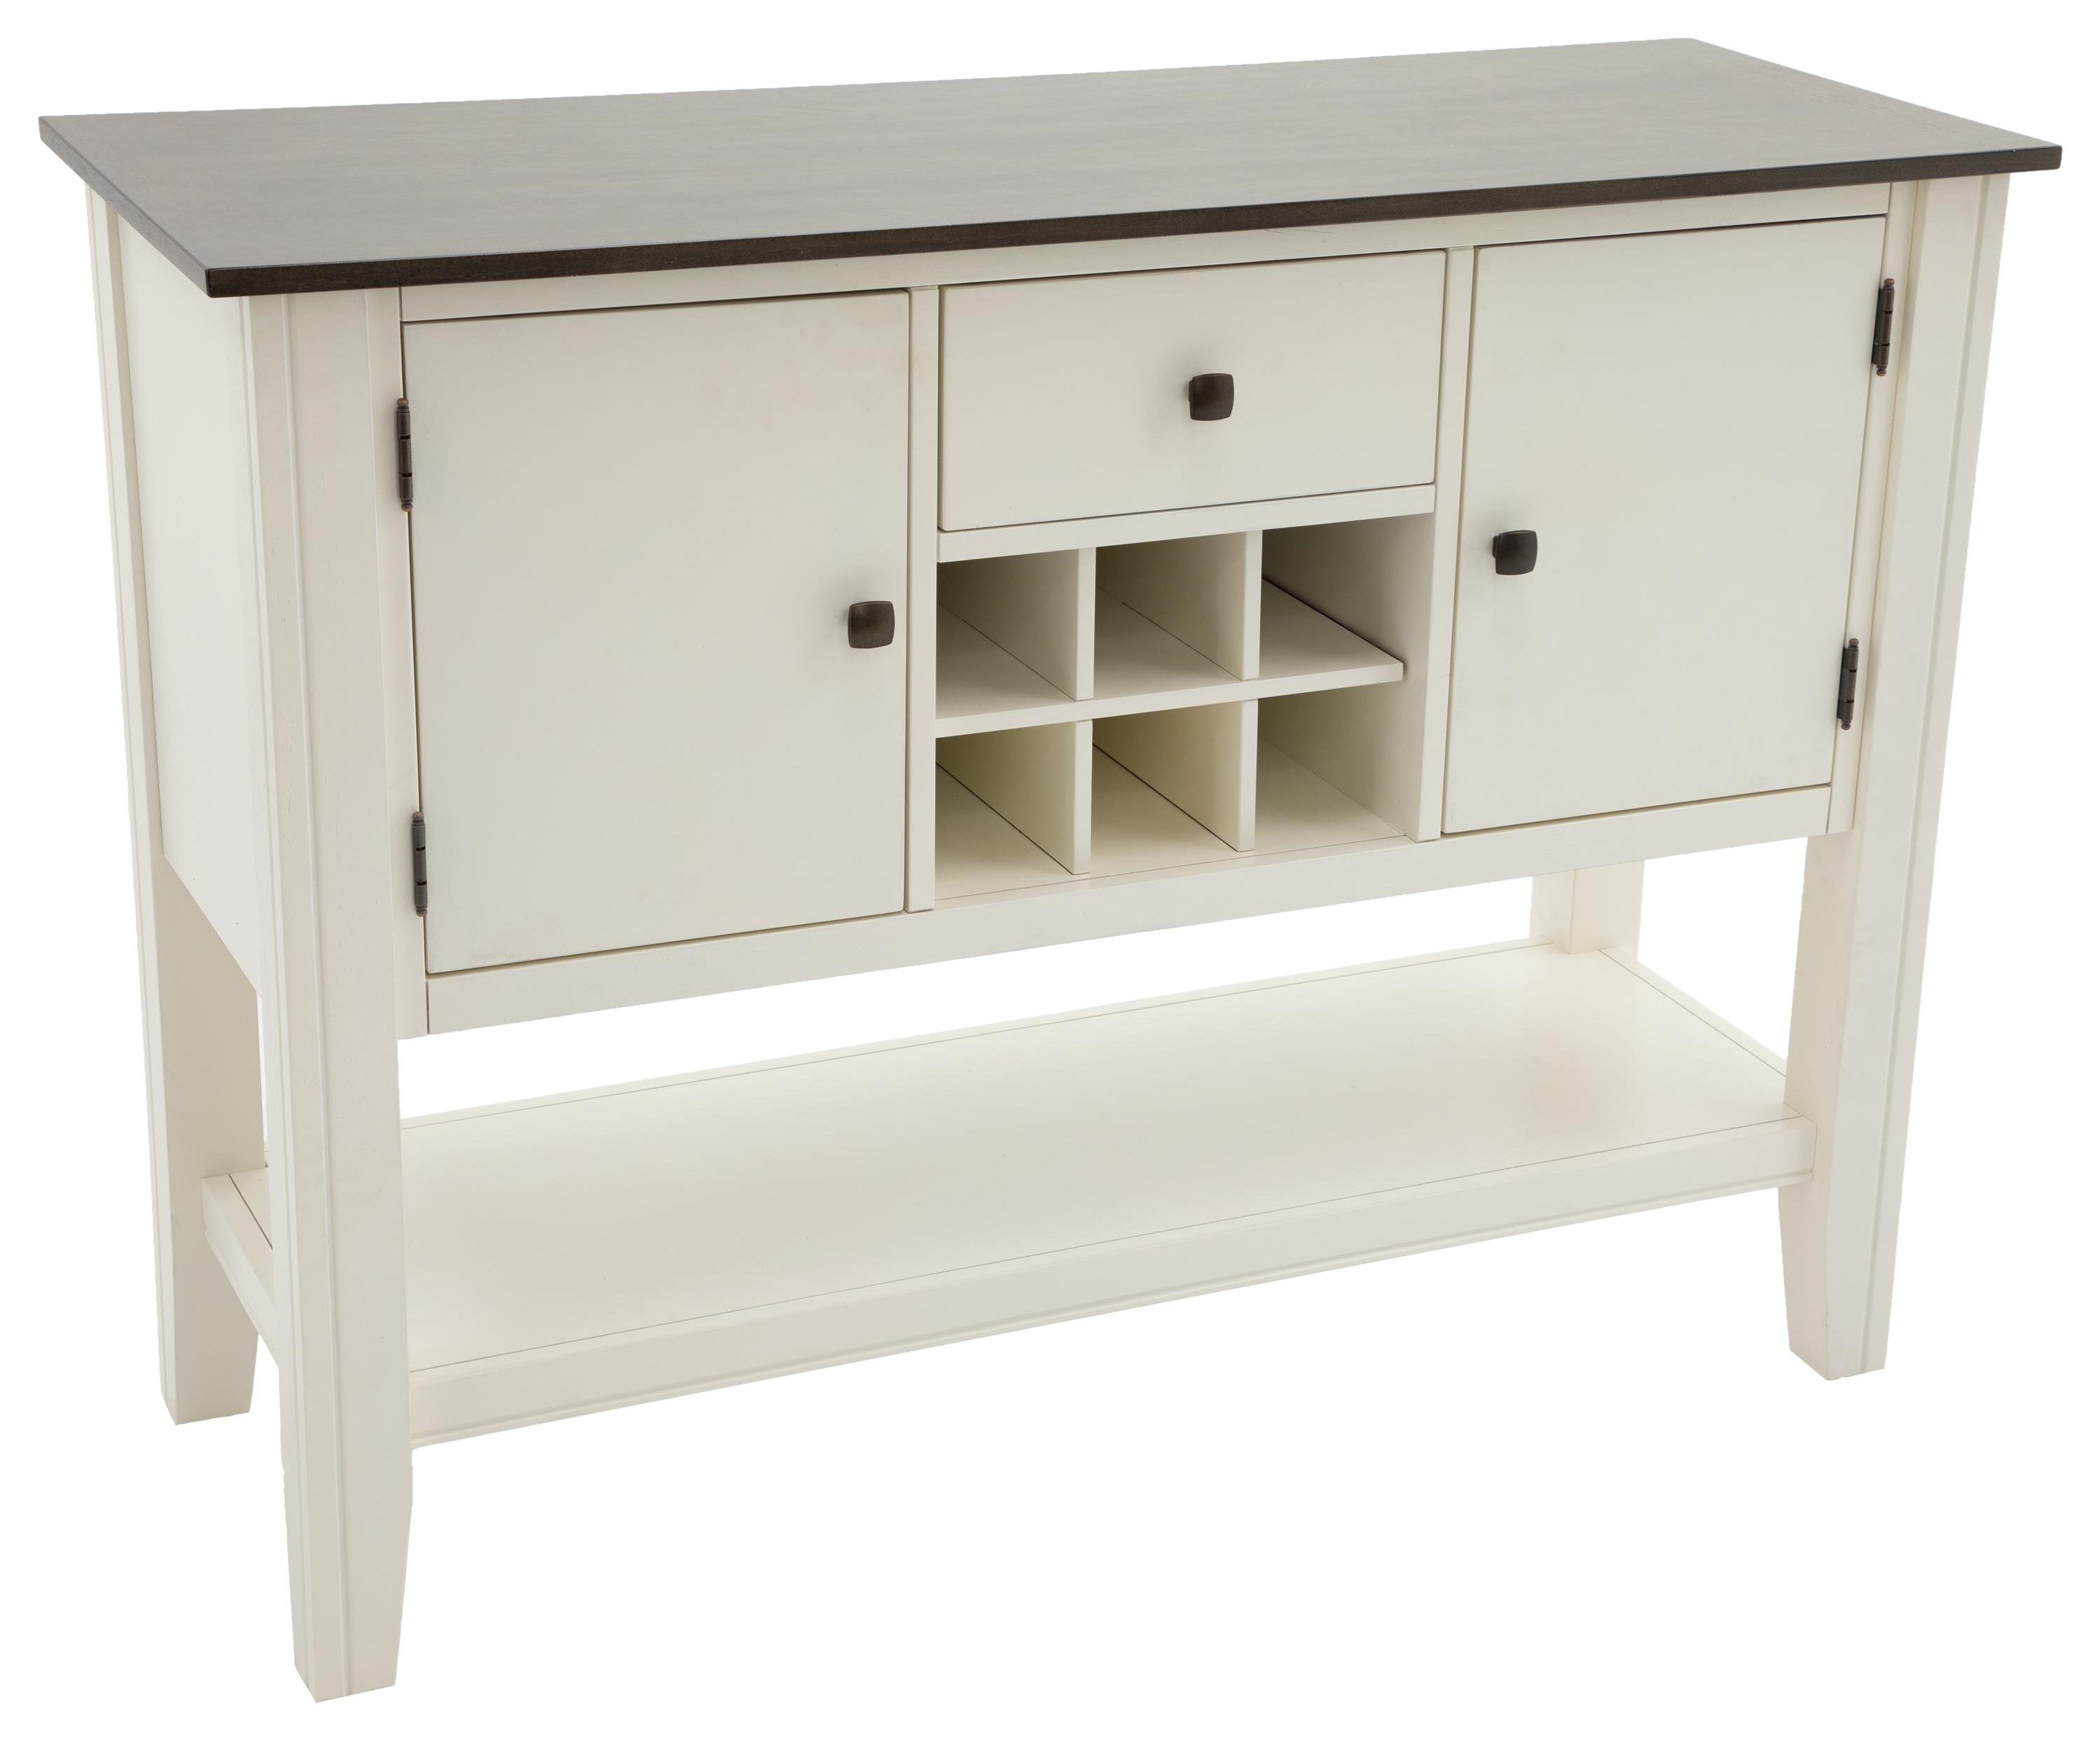 Carey White Carey Grey/White Server by HH at Walker's Furniture